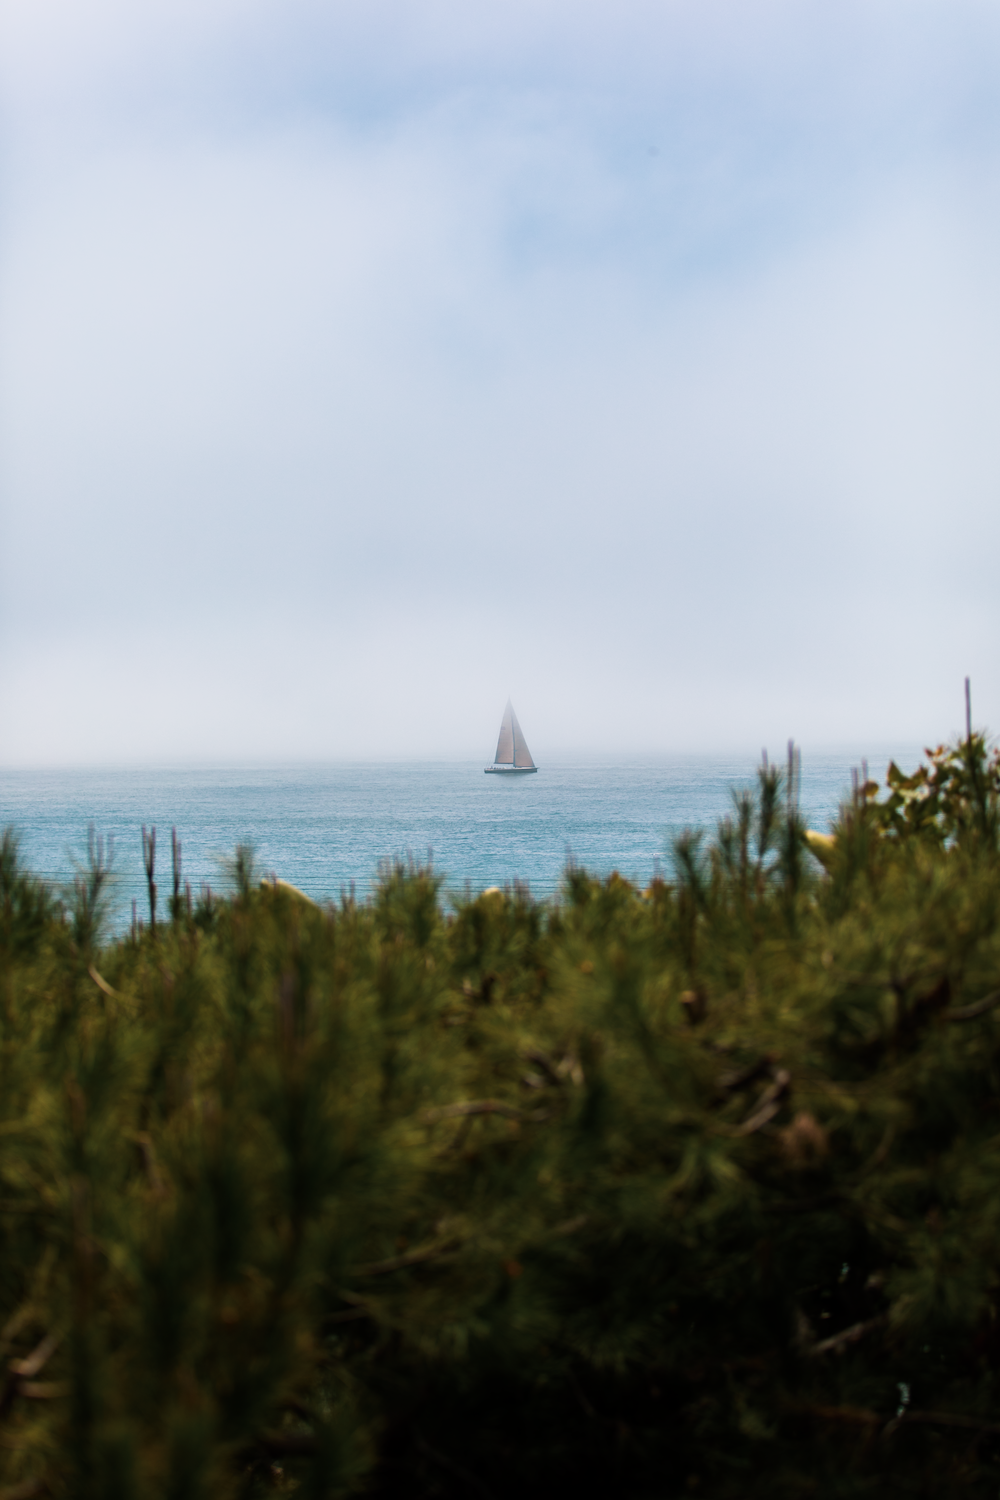 white sailboat on sea under white sky during daytime